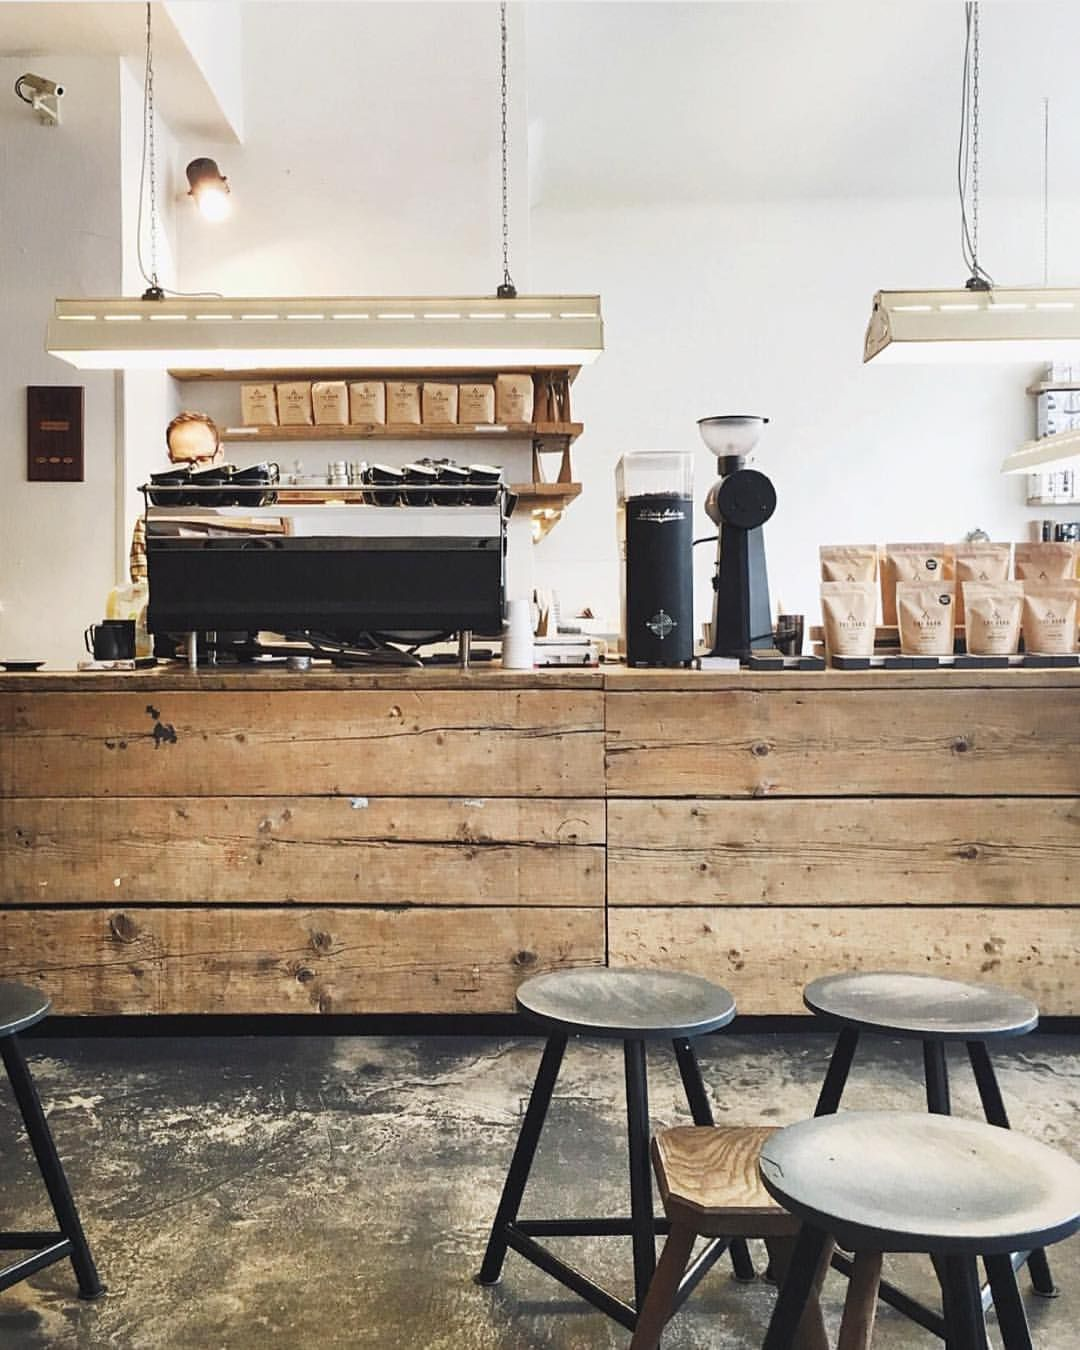 Bar Counter Ideas Design: Espresso Bar At @thebarnberlin @dcily #acmecups